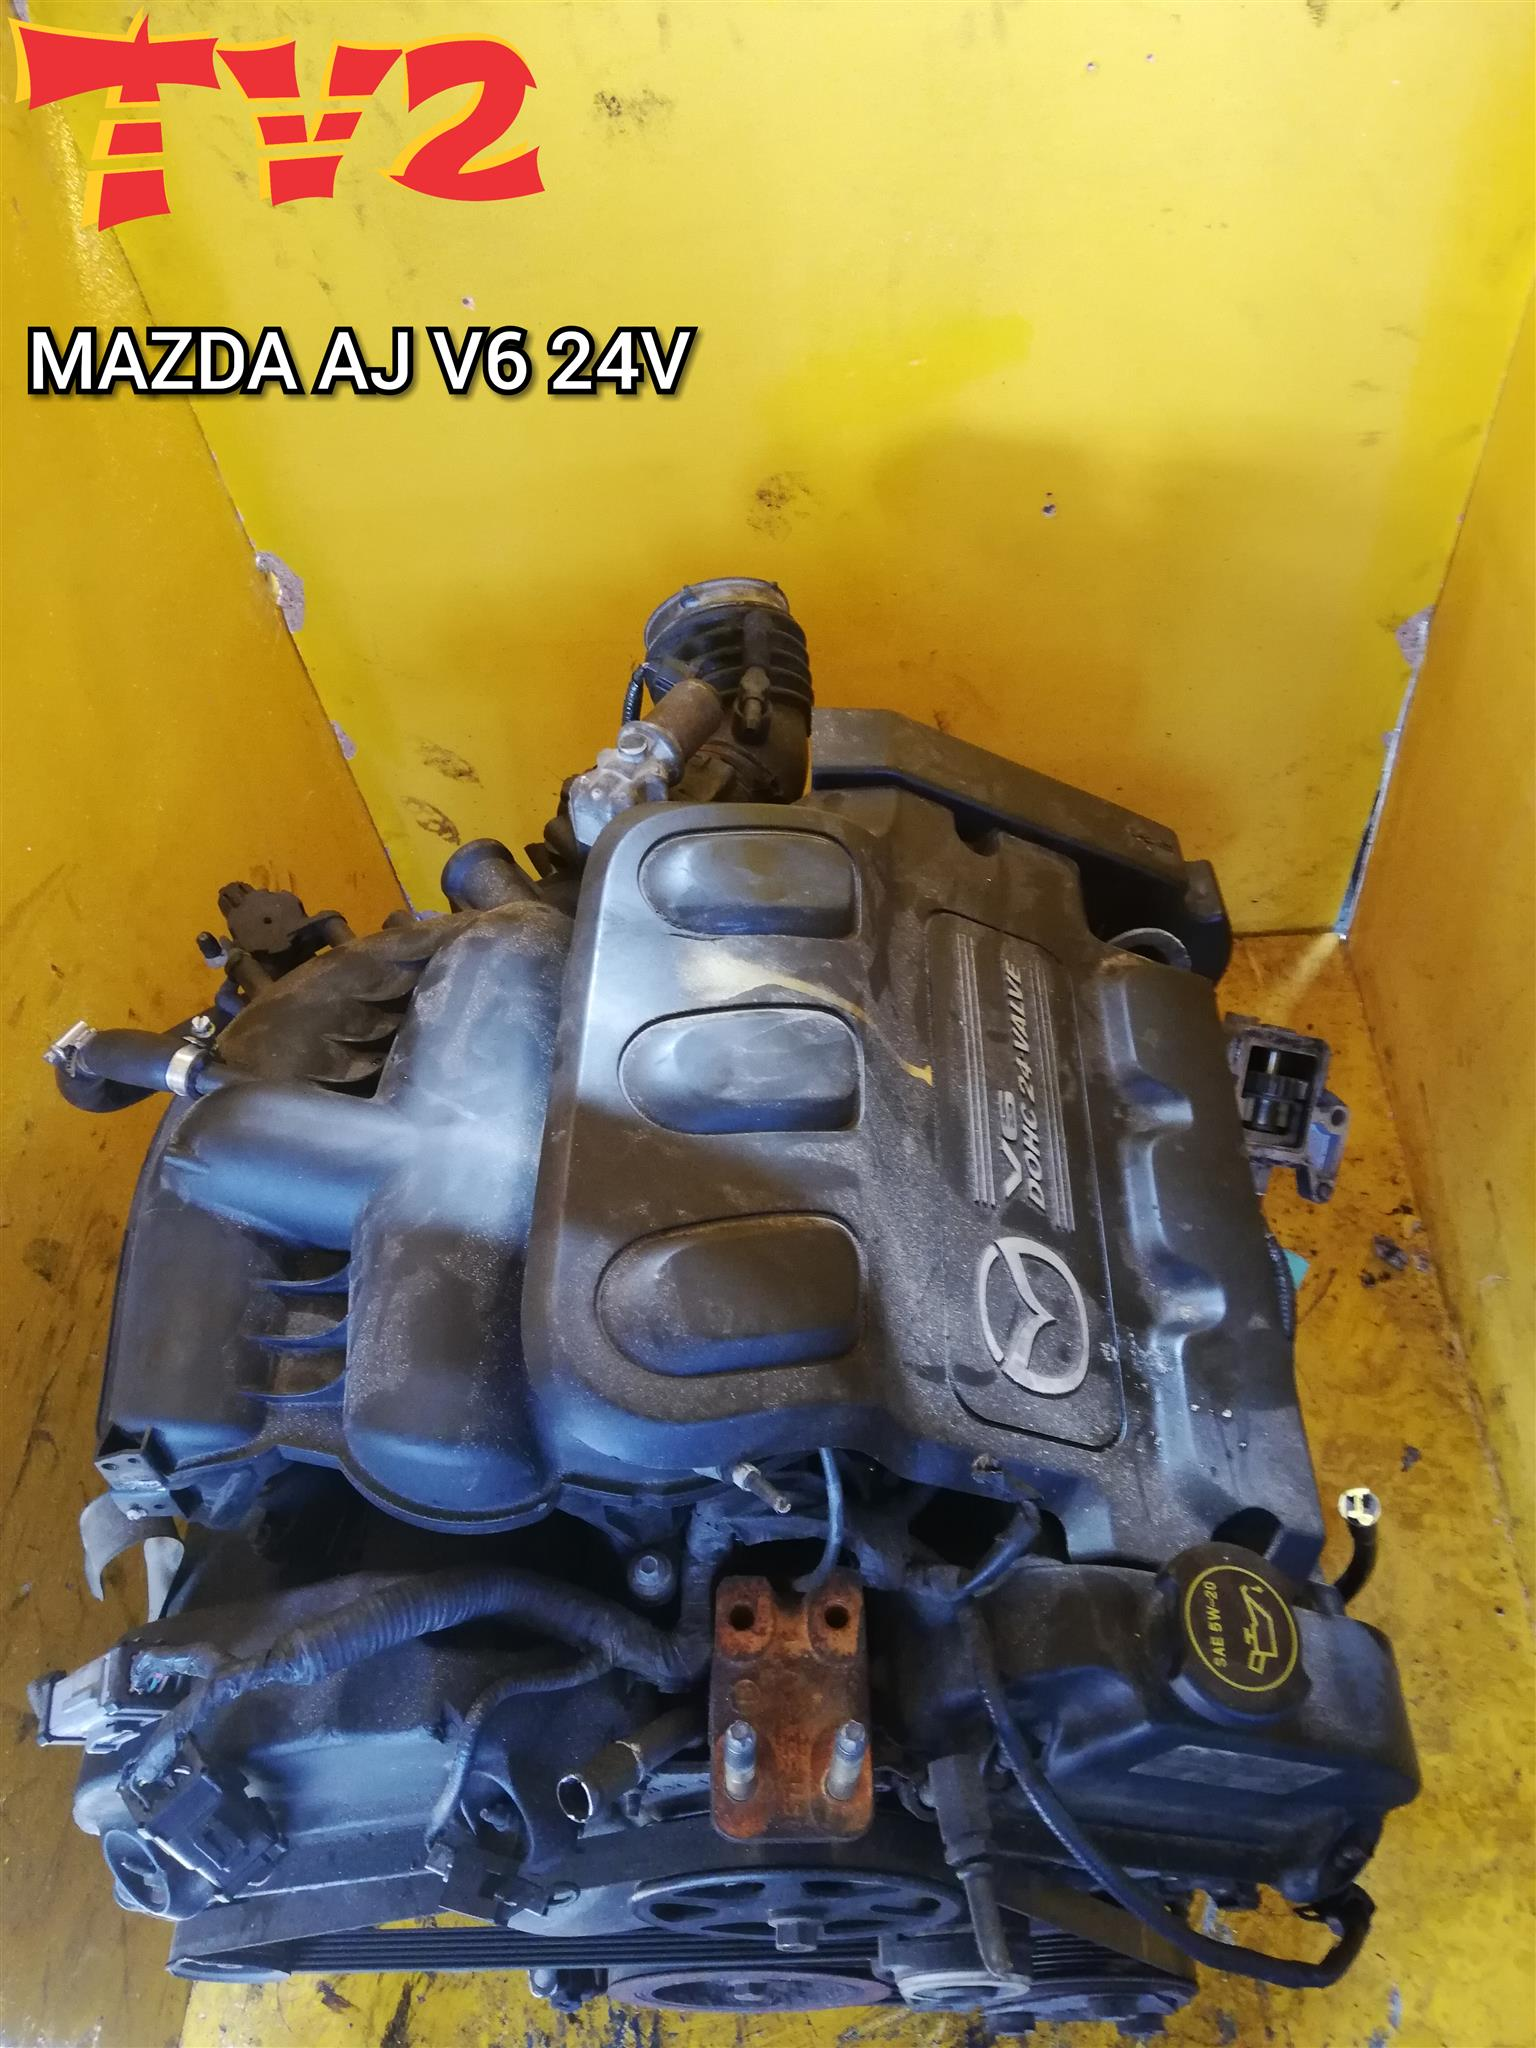 MAZDA- AJ V6 24V ENGINE FOR SALE